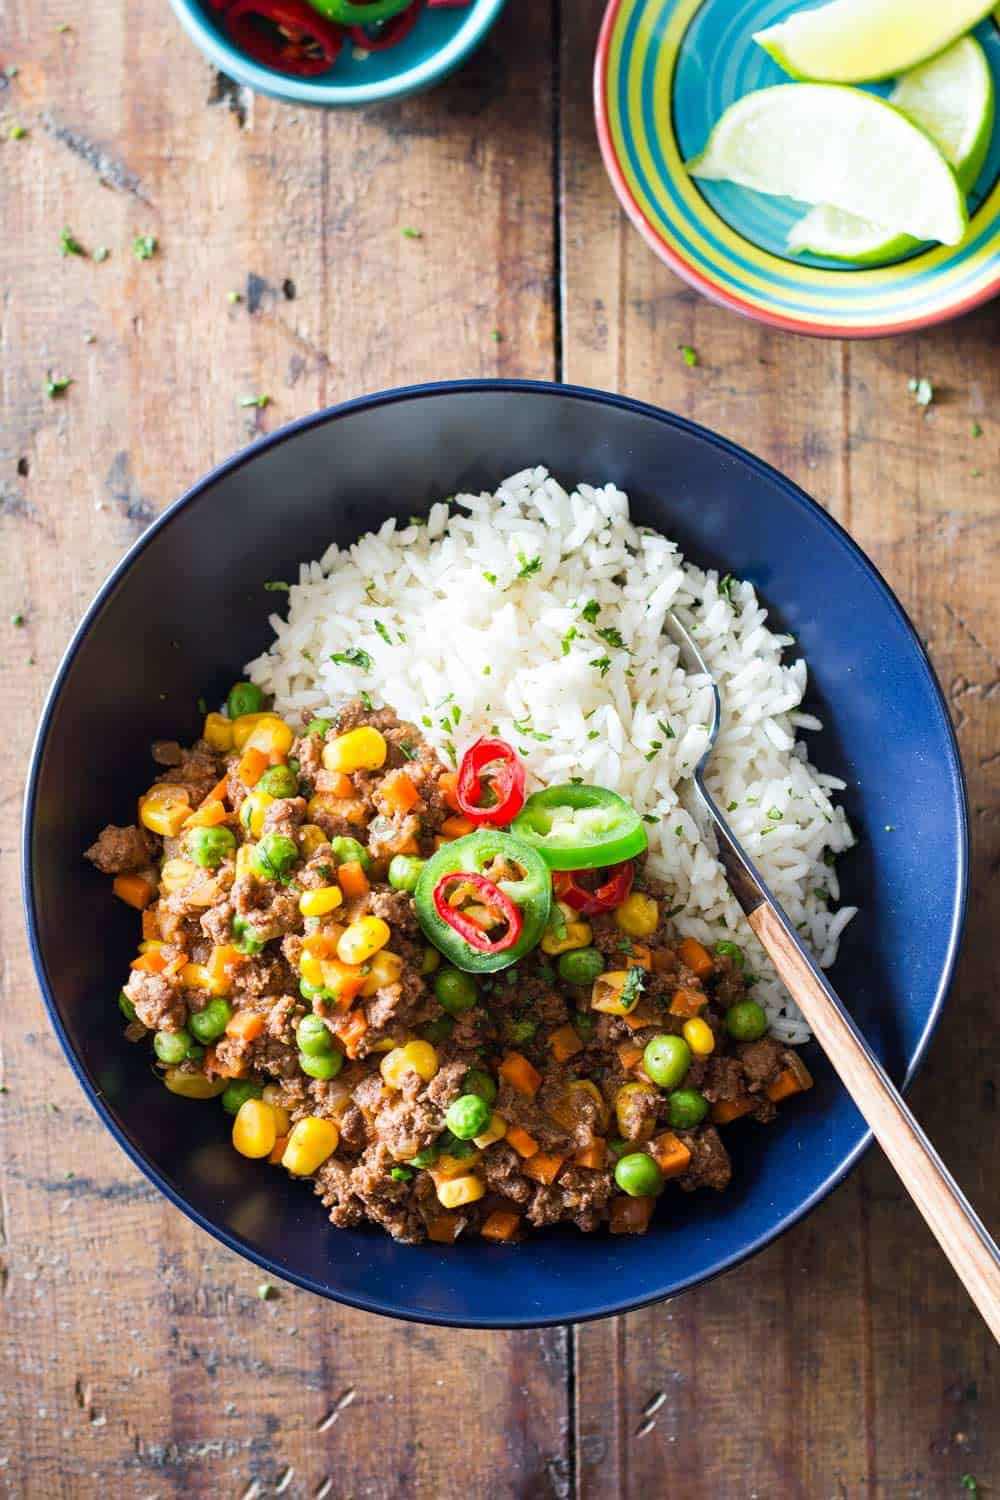 Mexican Picadillo in a blue bowl on a wooden table.